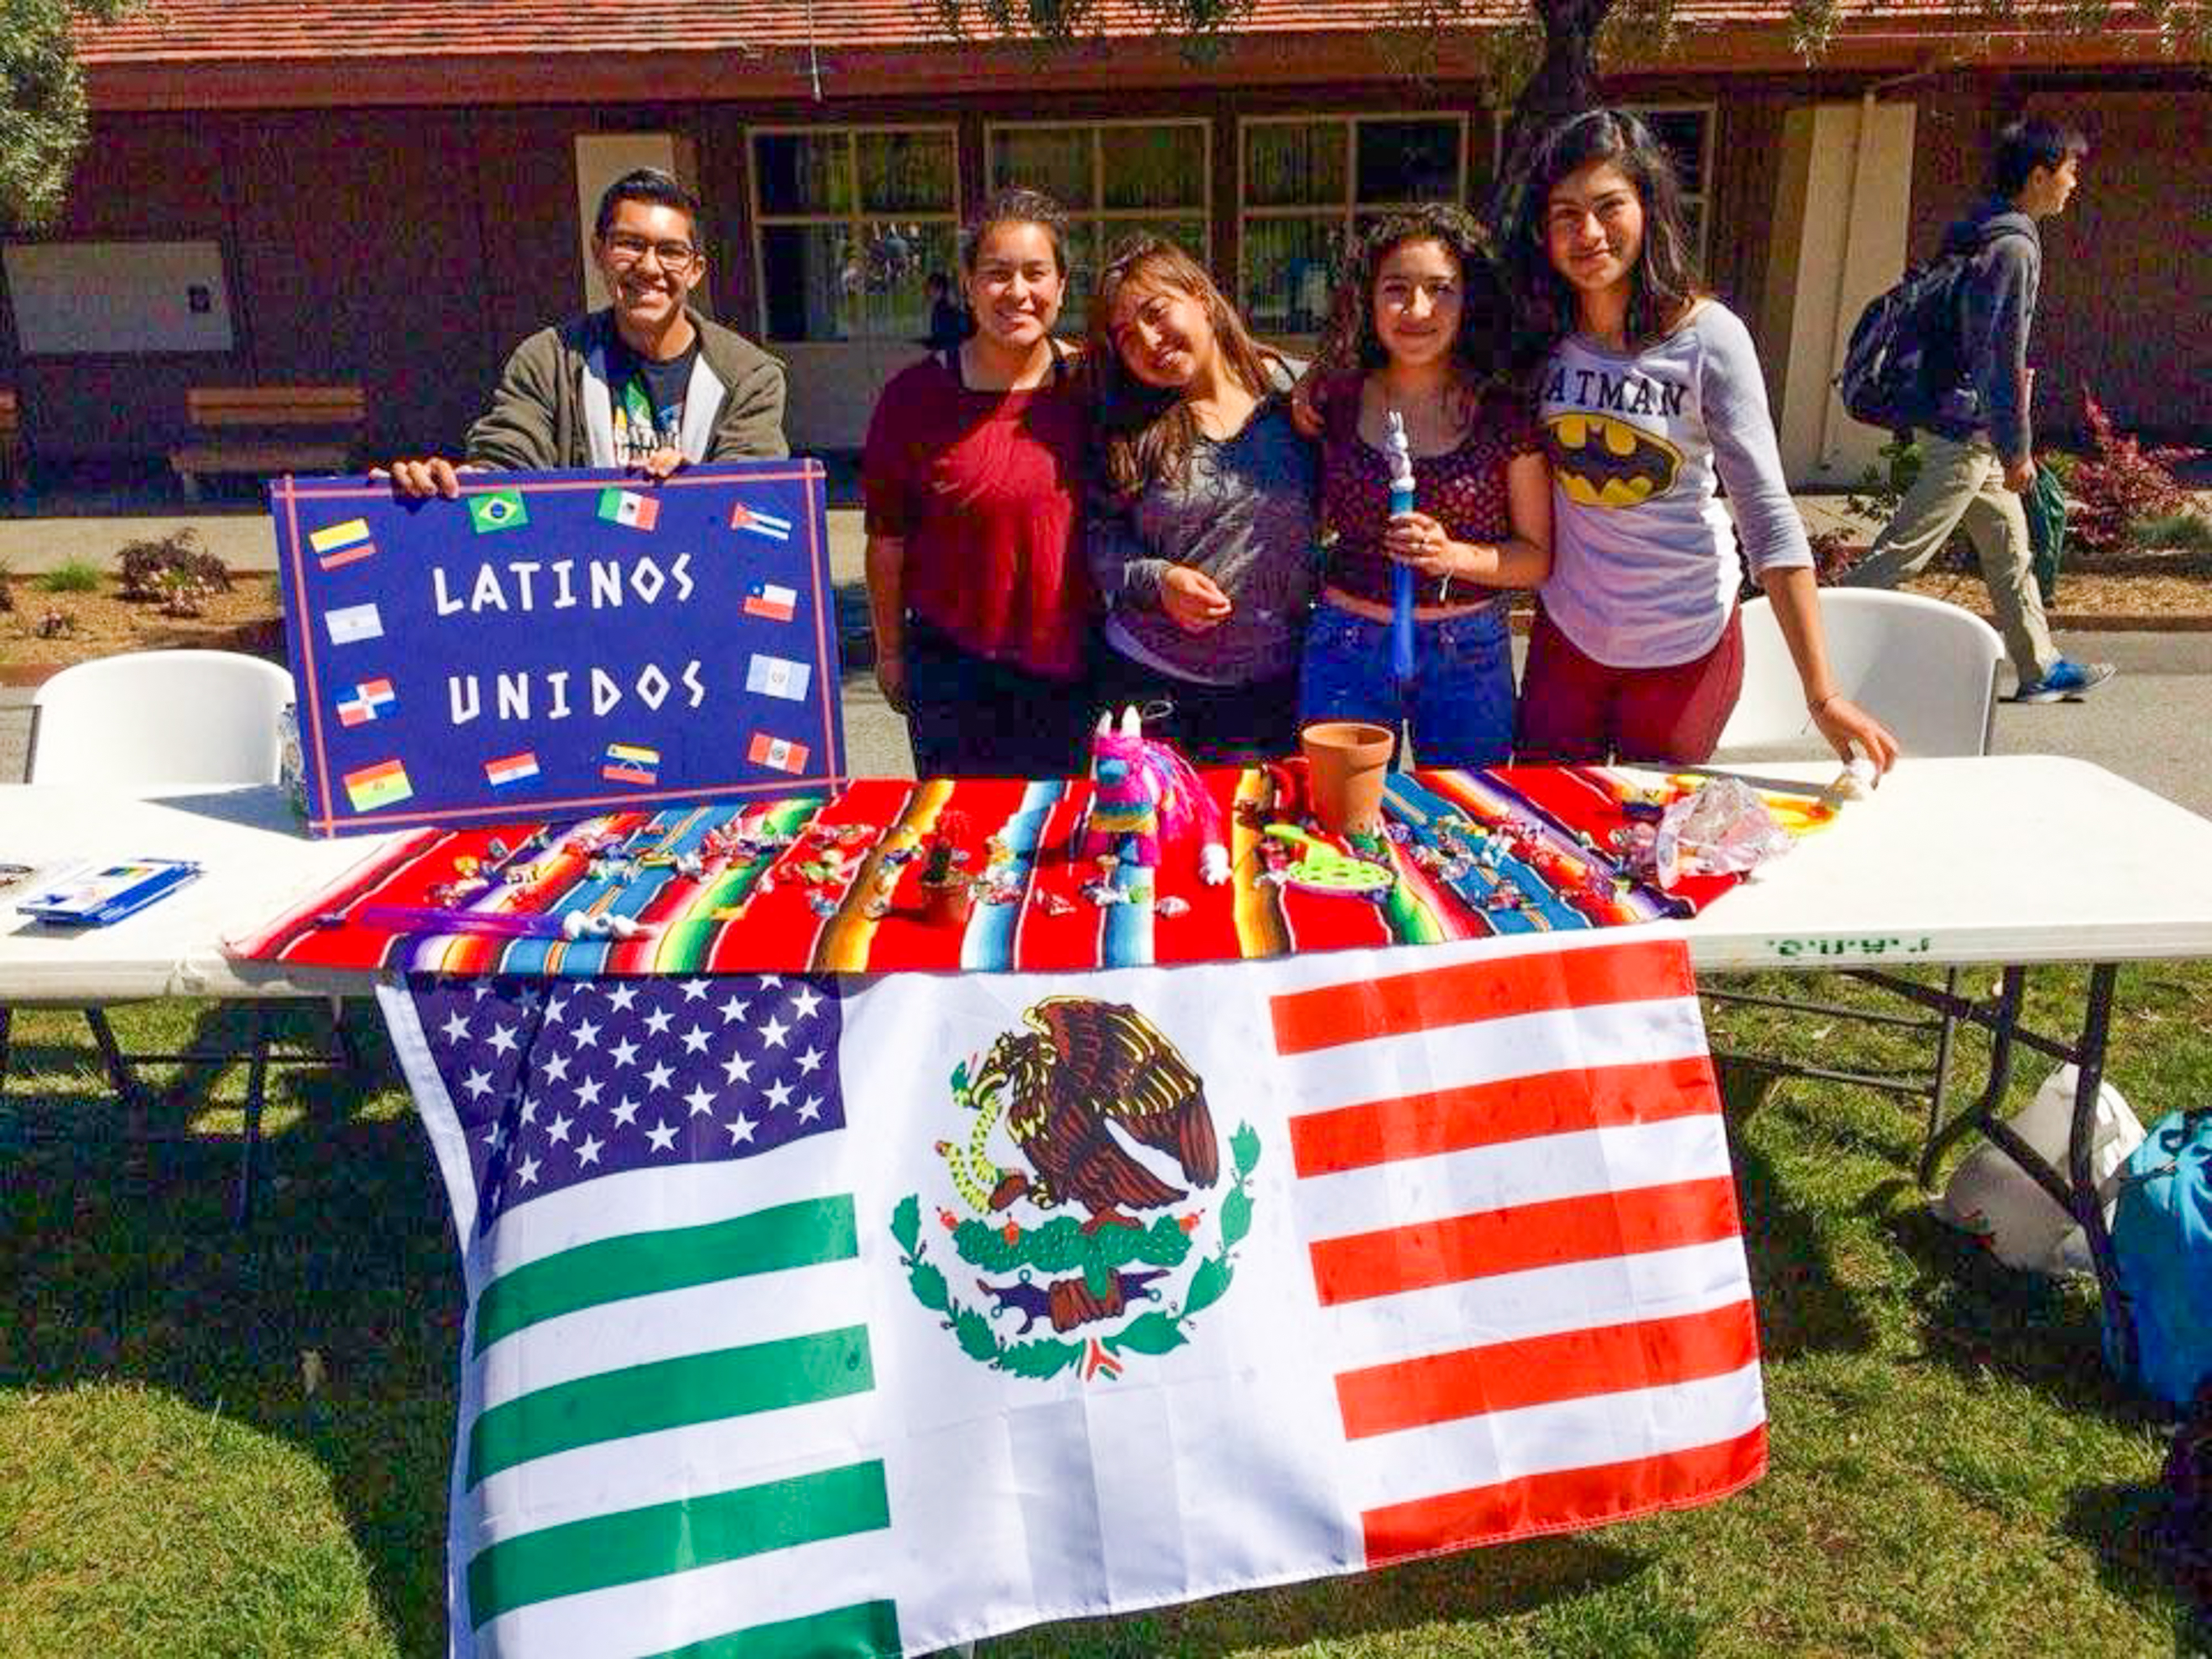 Ricardo Lombera served as president of Palo Alto High School's Latinos Unidos club, where he pushed school administrators to have an altar for Dia de los Muertos during the 2017-18 school year. Photo courtesy Ricardo Lombera.